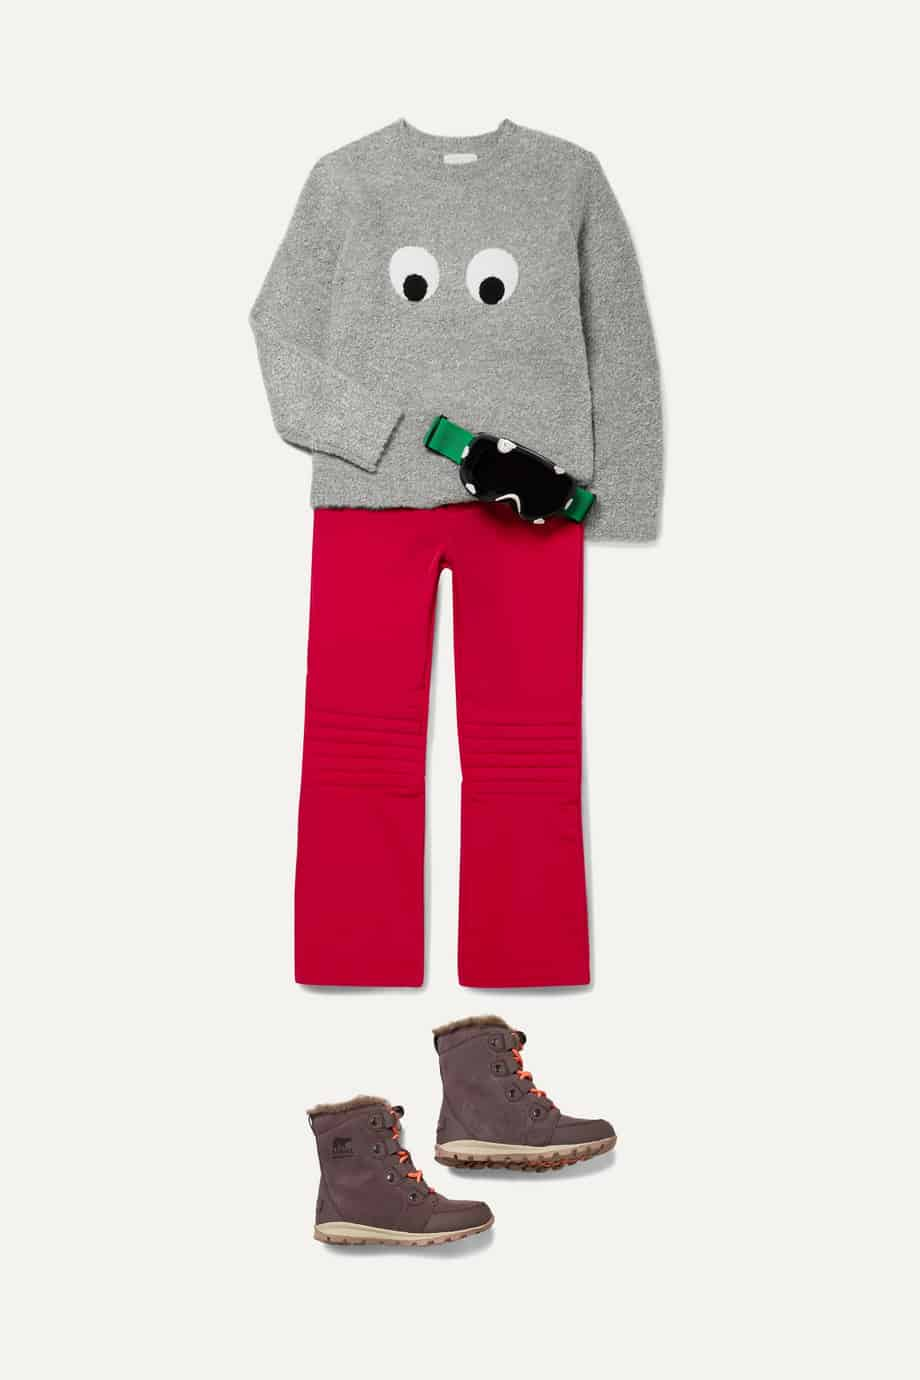 15 Eco Friendly Gifts For Kids For All Occasions